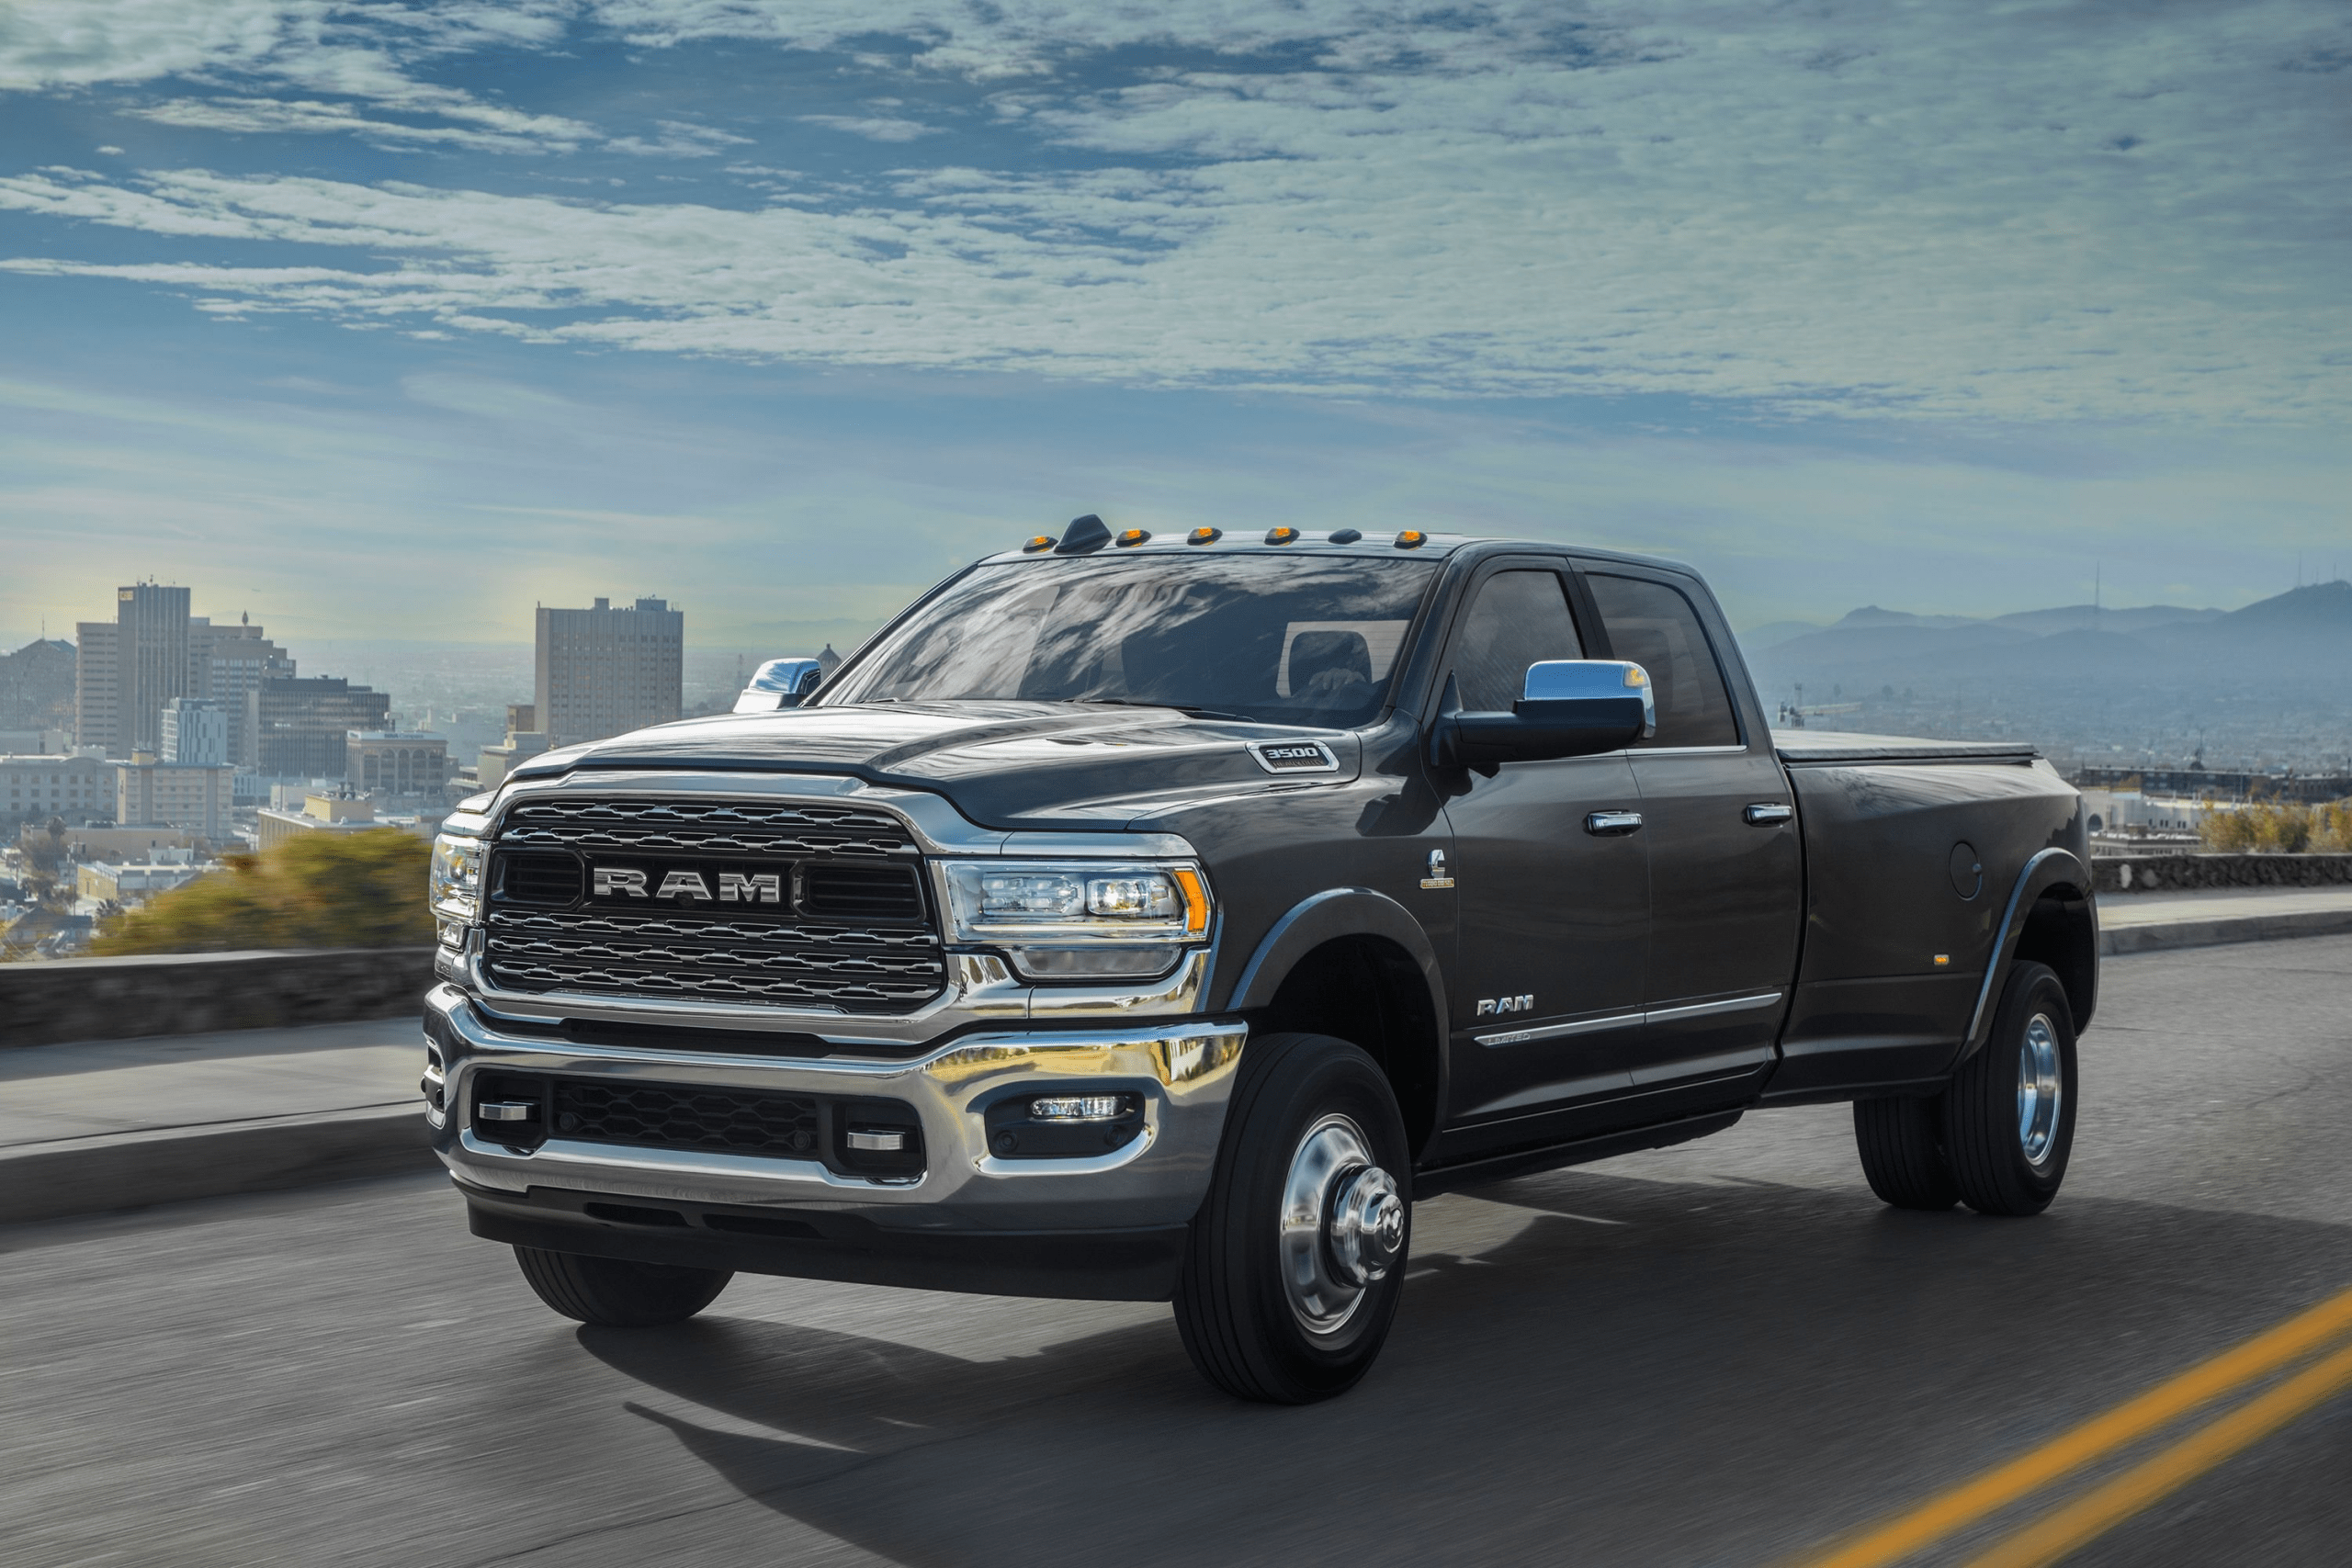 2020 Dodge Ram 3500 New Concept In 2020 Dodge Ram Dodge Ram 3500 Diesel Trucks